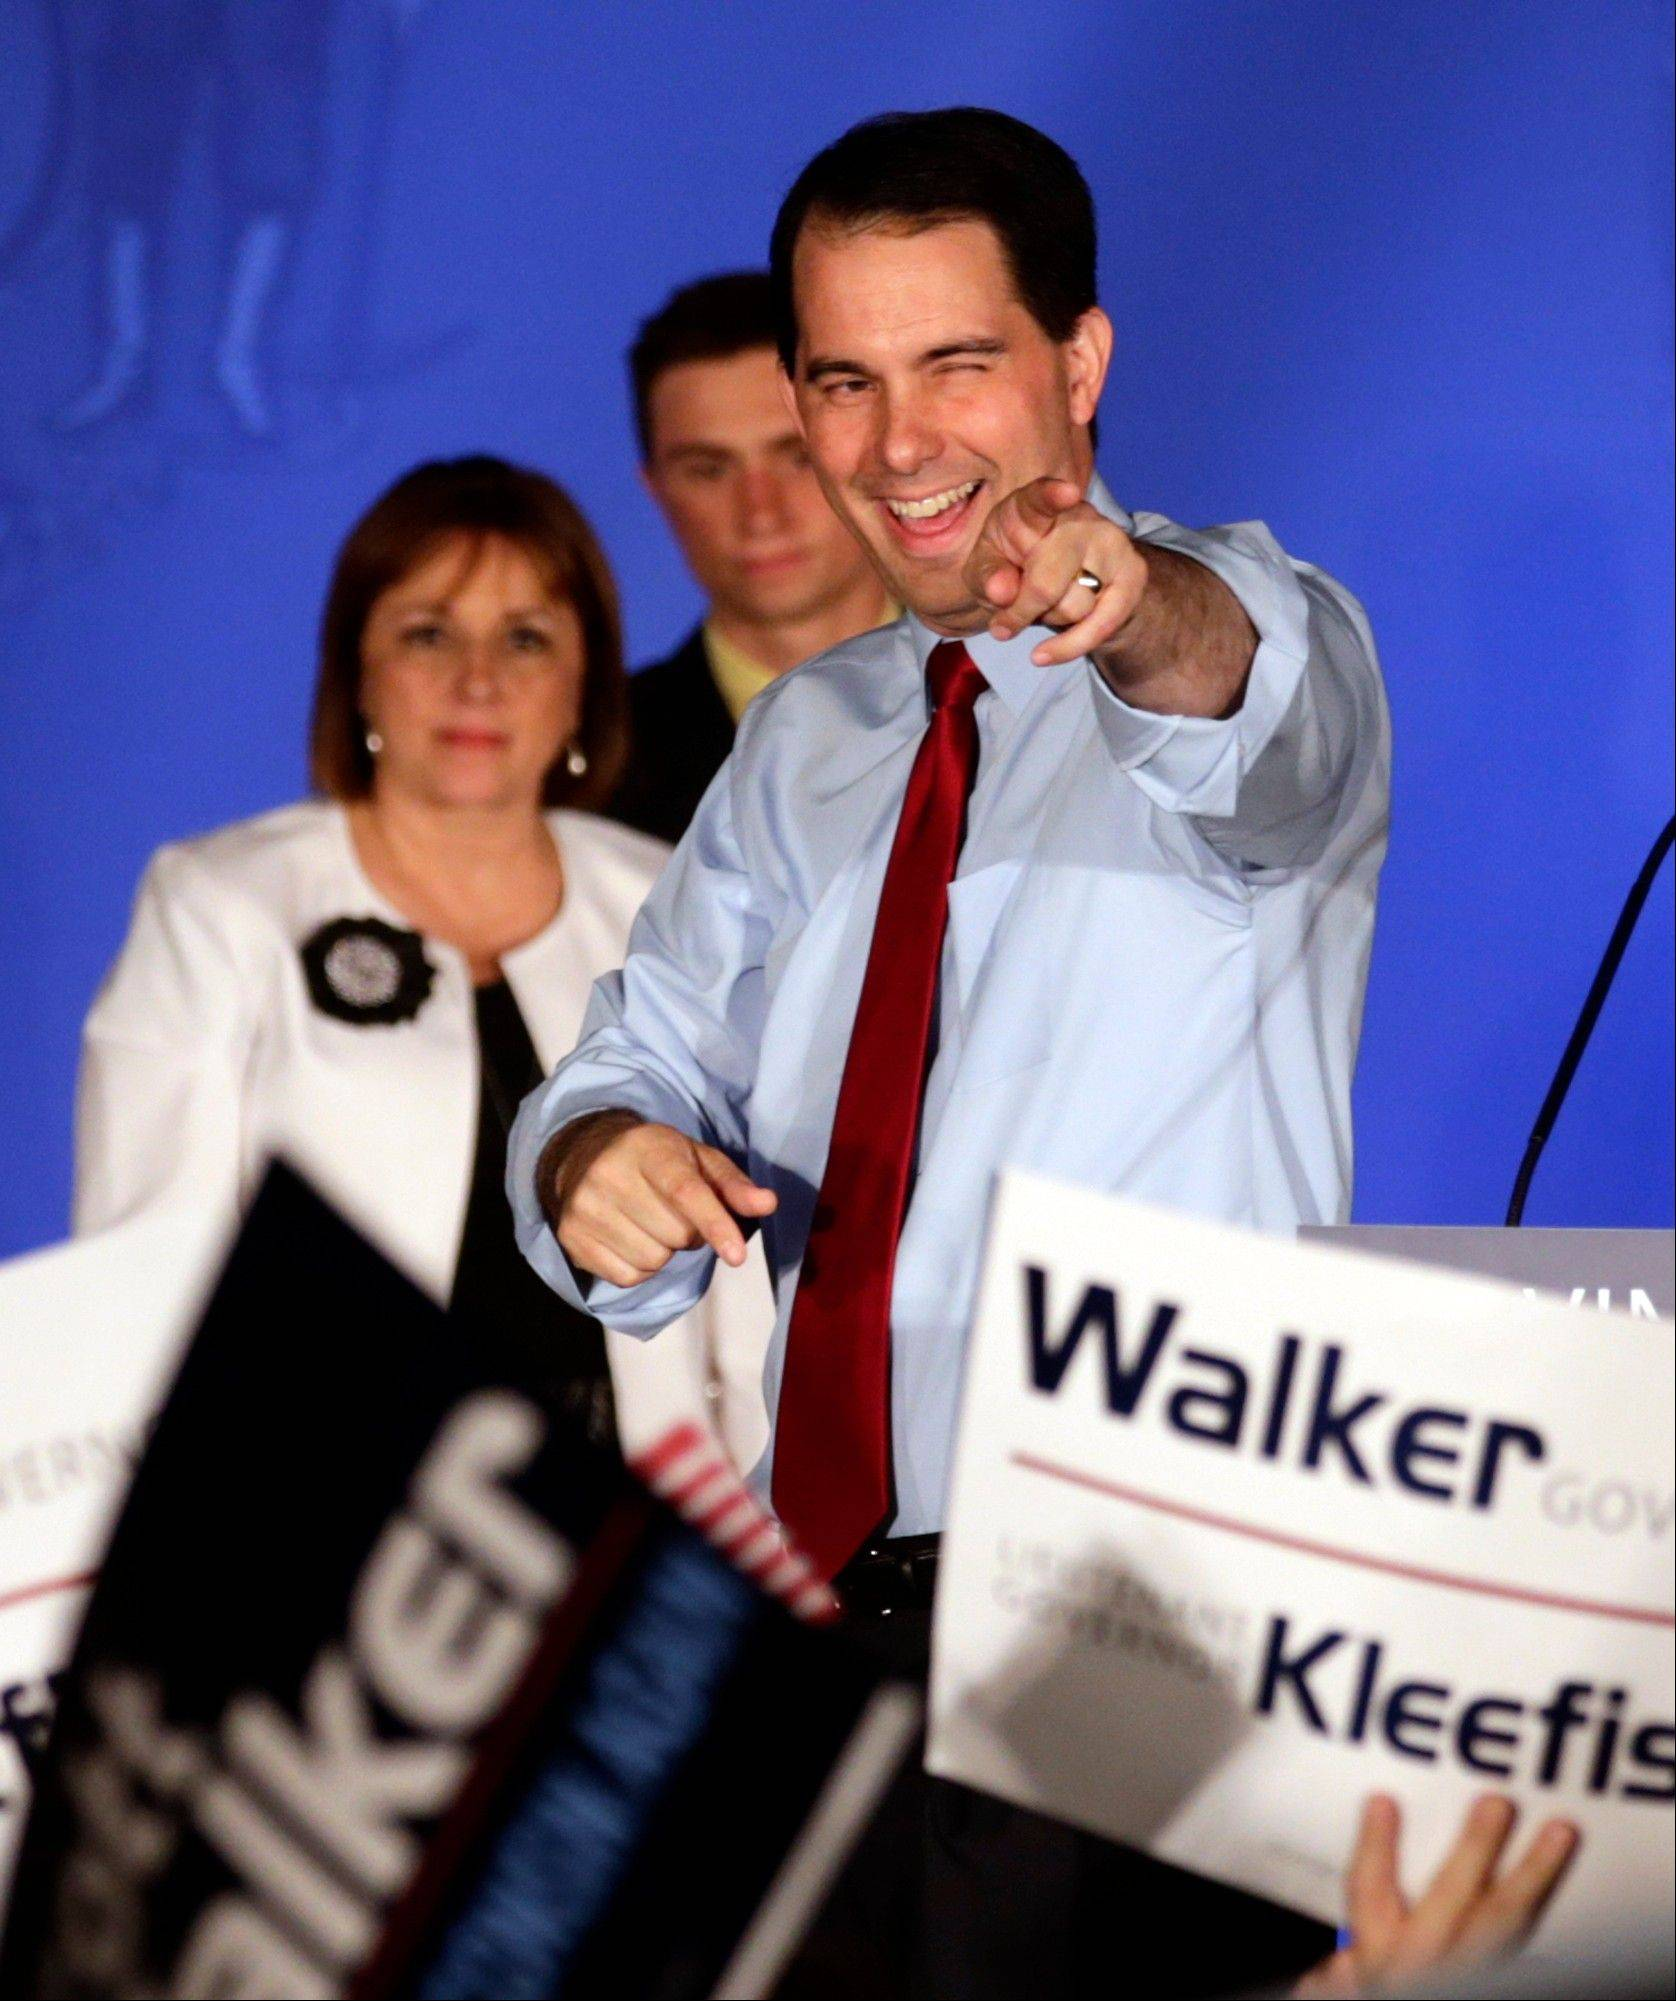 Wisconsin outcome signals opportunity for Romney